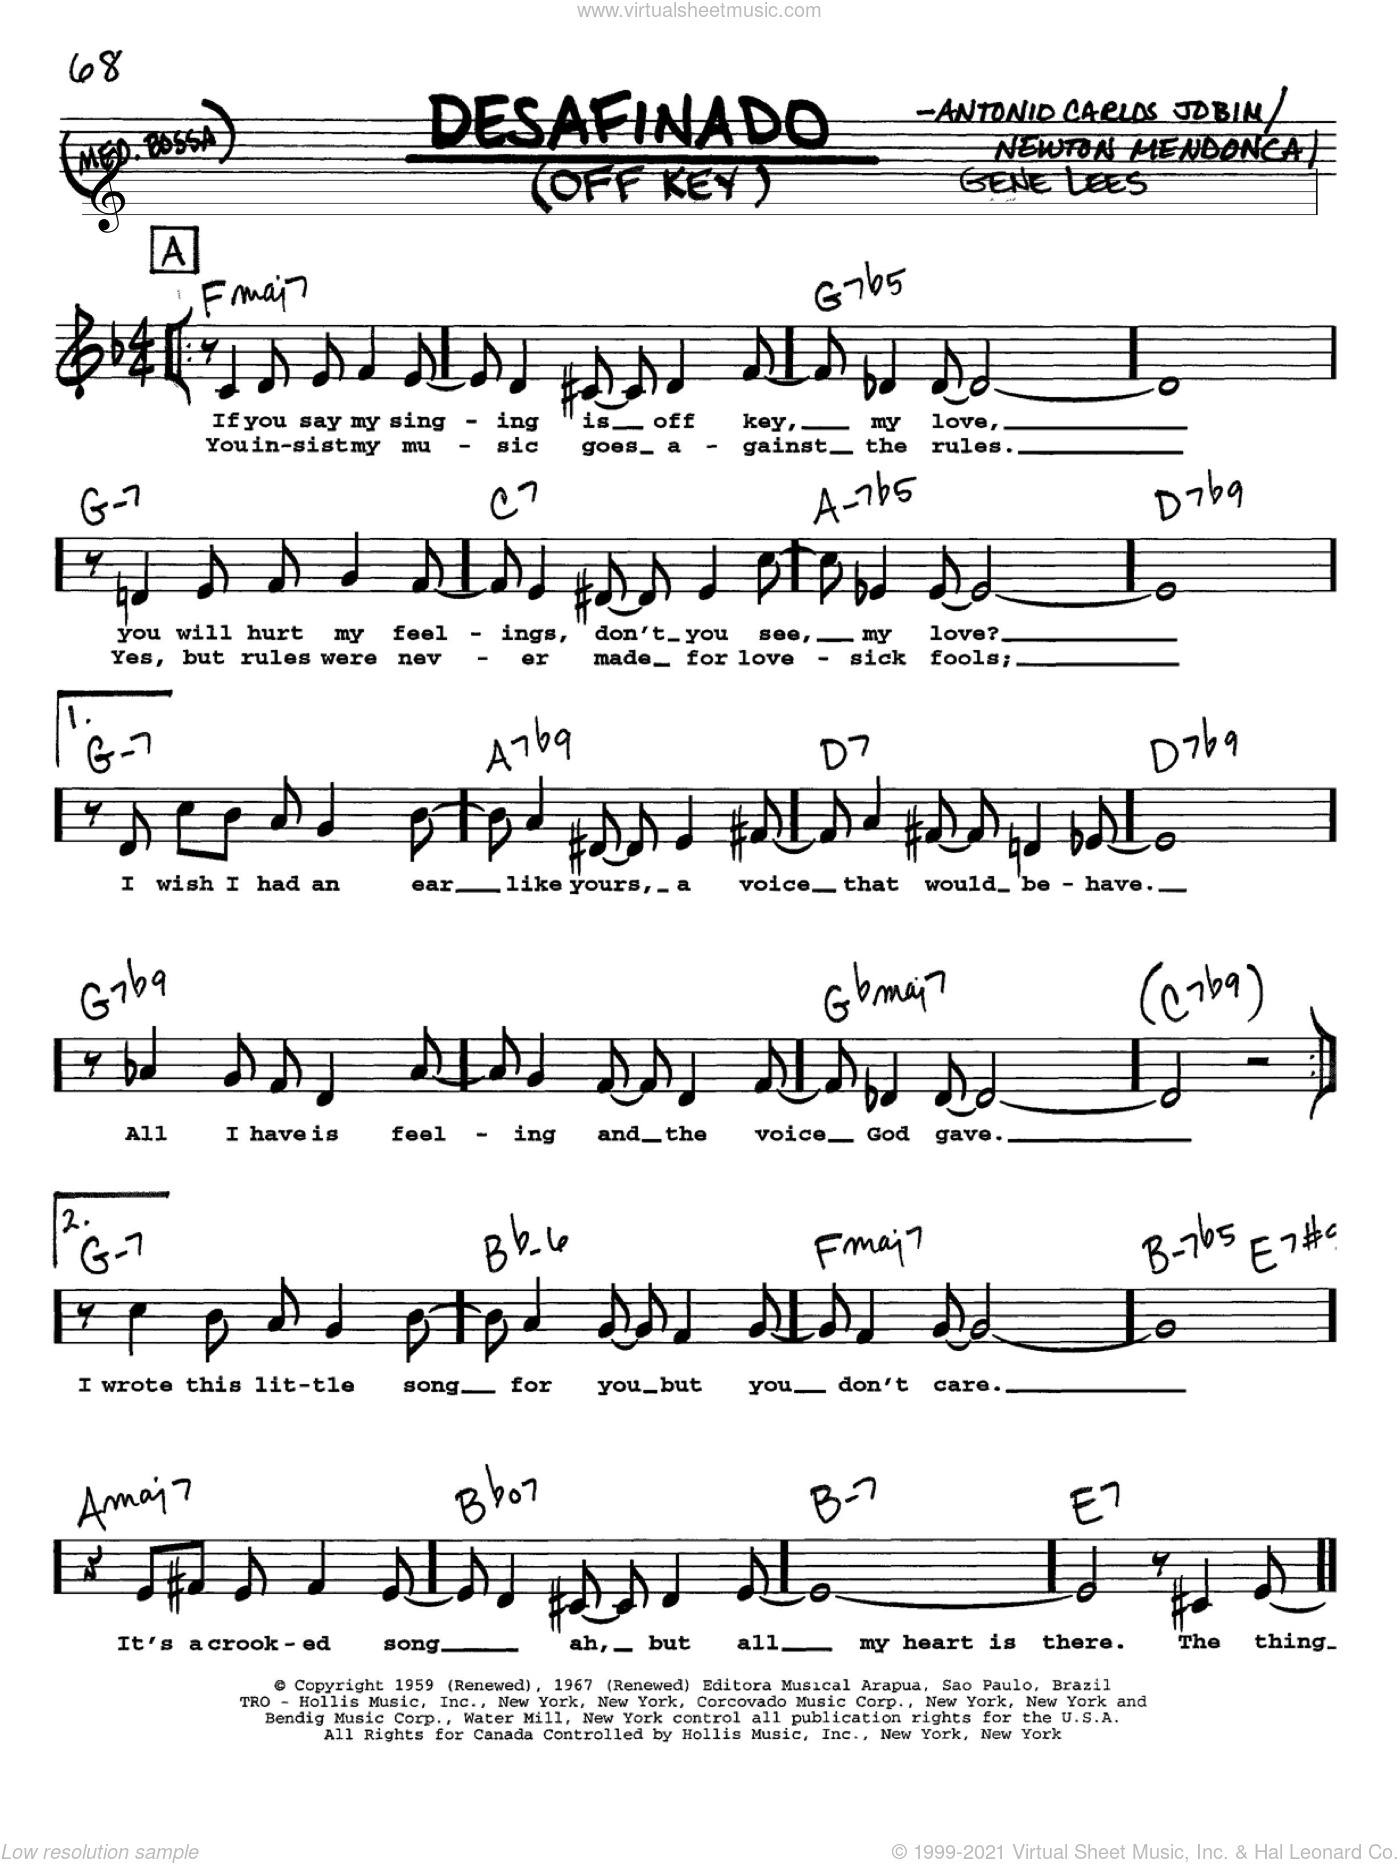 Desafinado (Off Key) sheet music for voice and other instruments (Vocal Volume 1) by Antonio Carlos Jobim, intermediate. Score Image Preview.